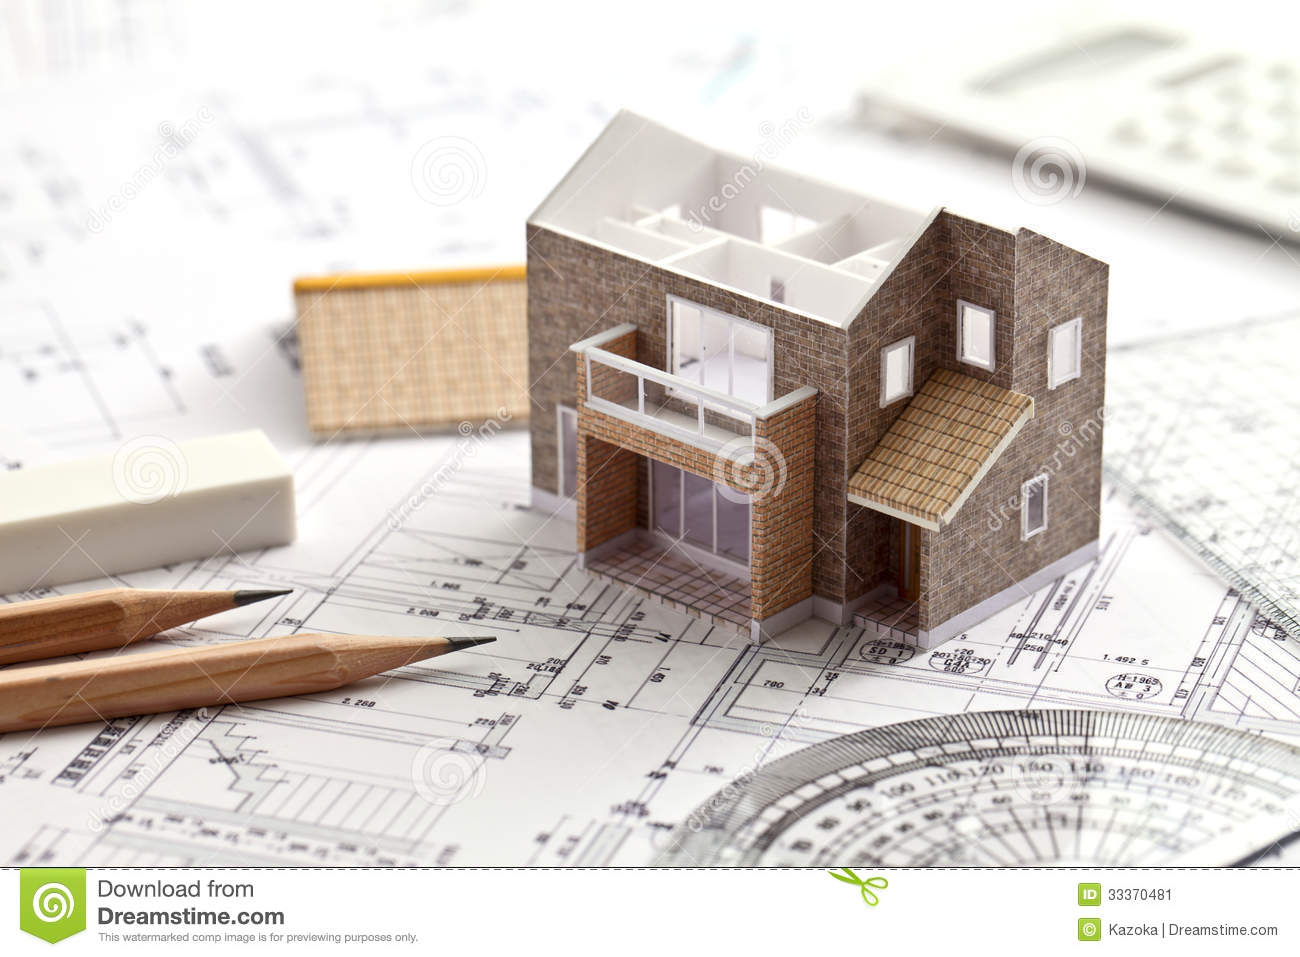 House Design Drawing Stock Image Image Of Object Paper 33370481